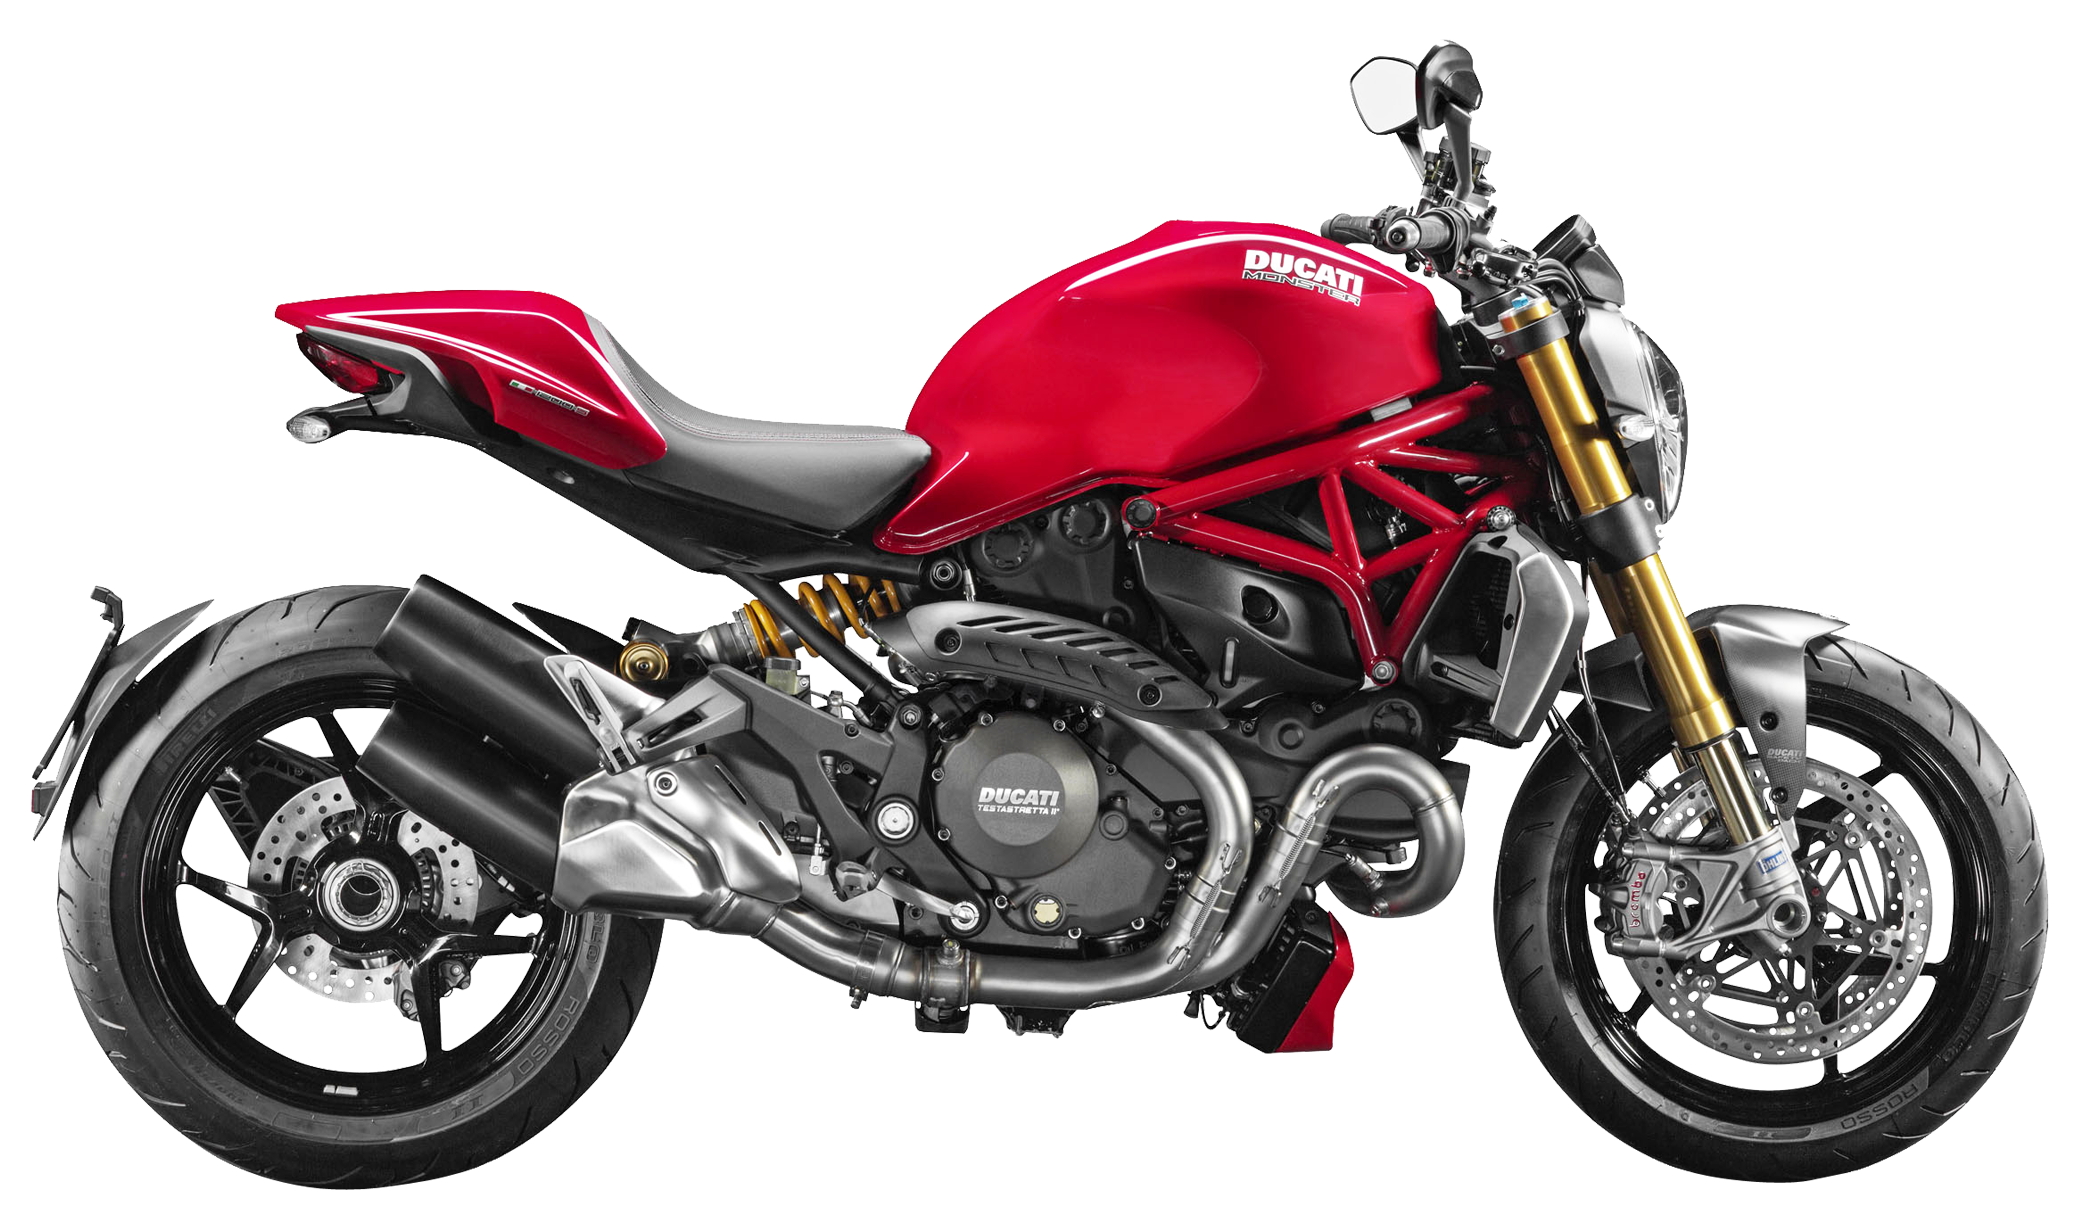 Ducati Monster Red Png Image Ducati Monster 1200 Ducati Monster Ducati